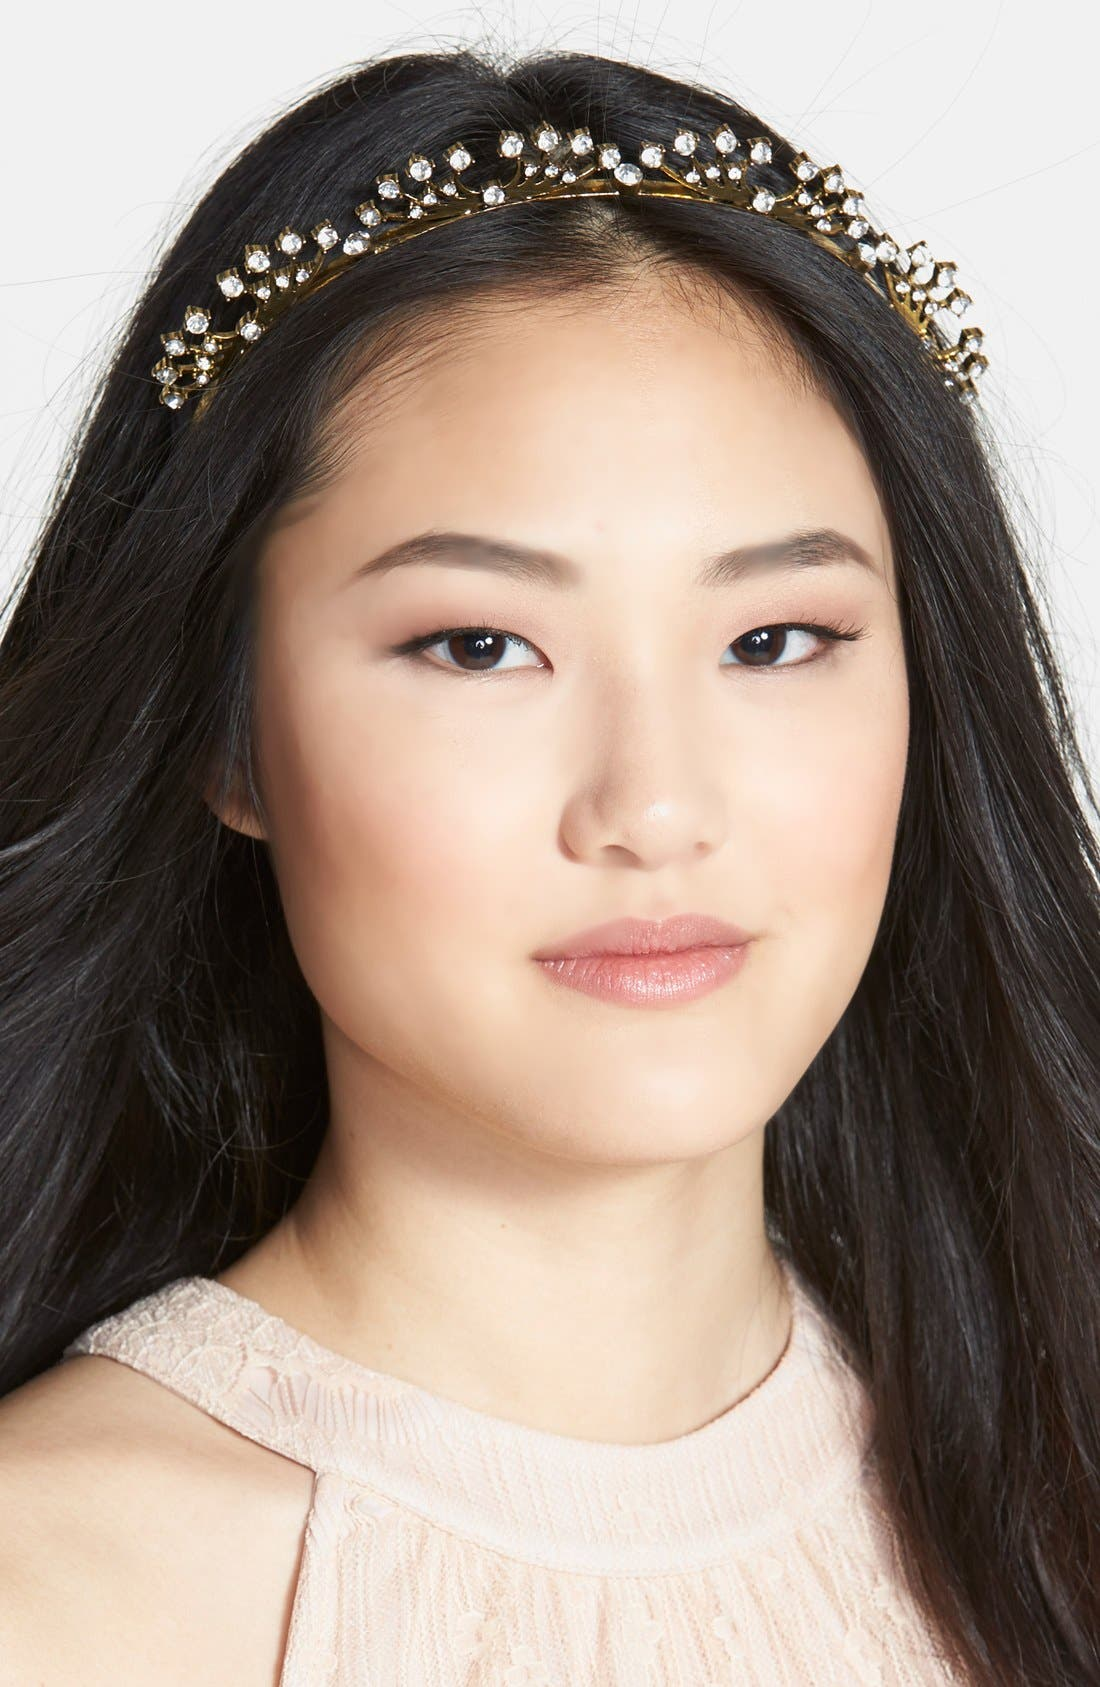 Main Image - Untamed Petals by Amanda Judge x Meredith Markworth-Pollack 'Royal Tiara' Gilded Headband